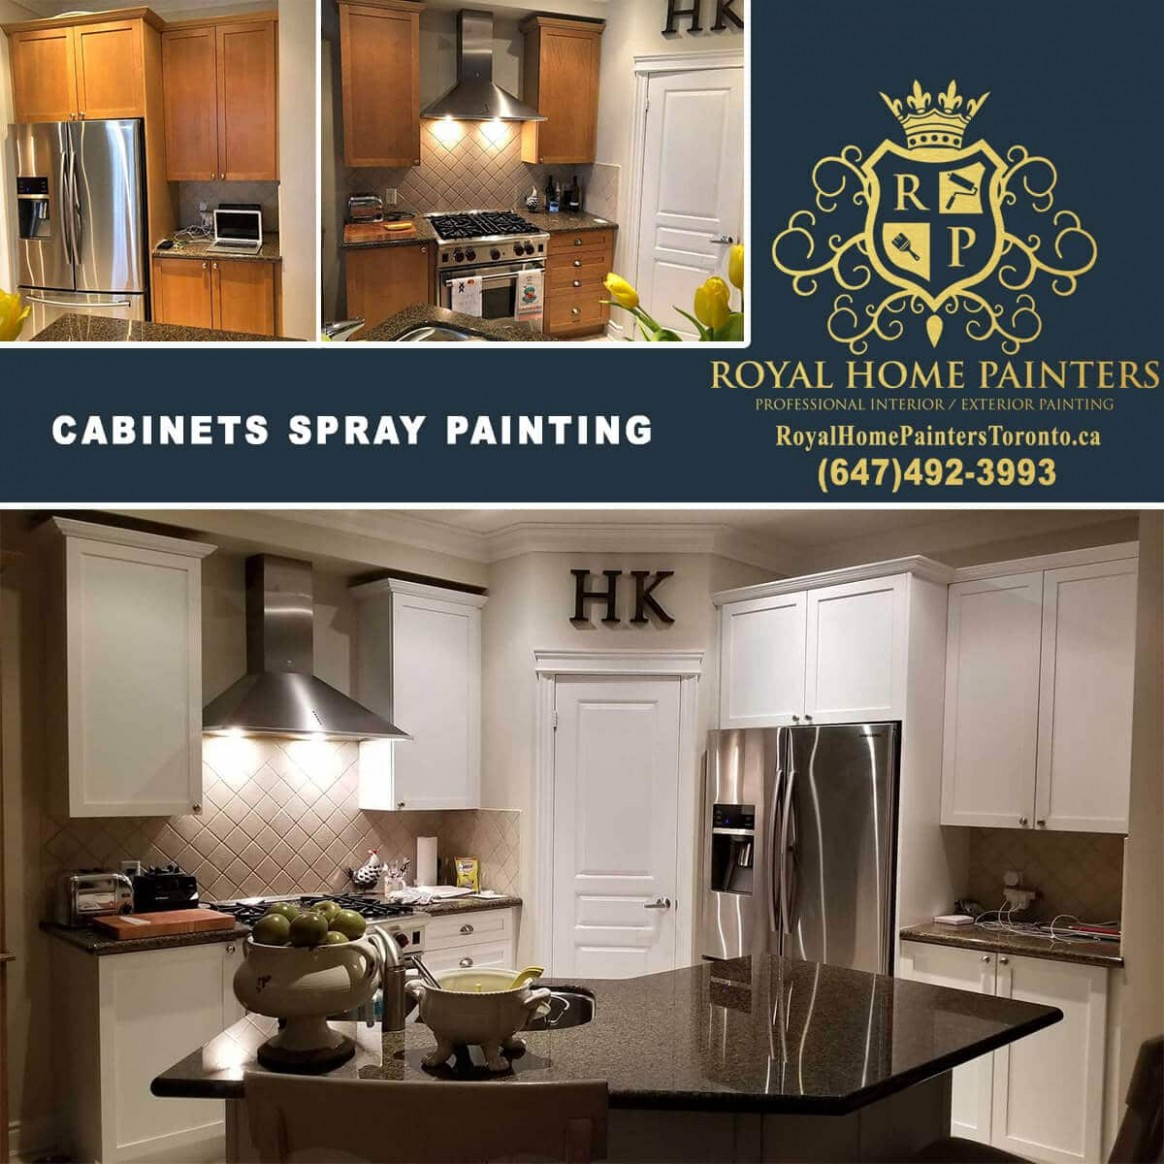 Royal Home Painters Toronto - Interior Exterior House Painting - Kitchen Cabinet Painting Toronto